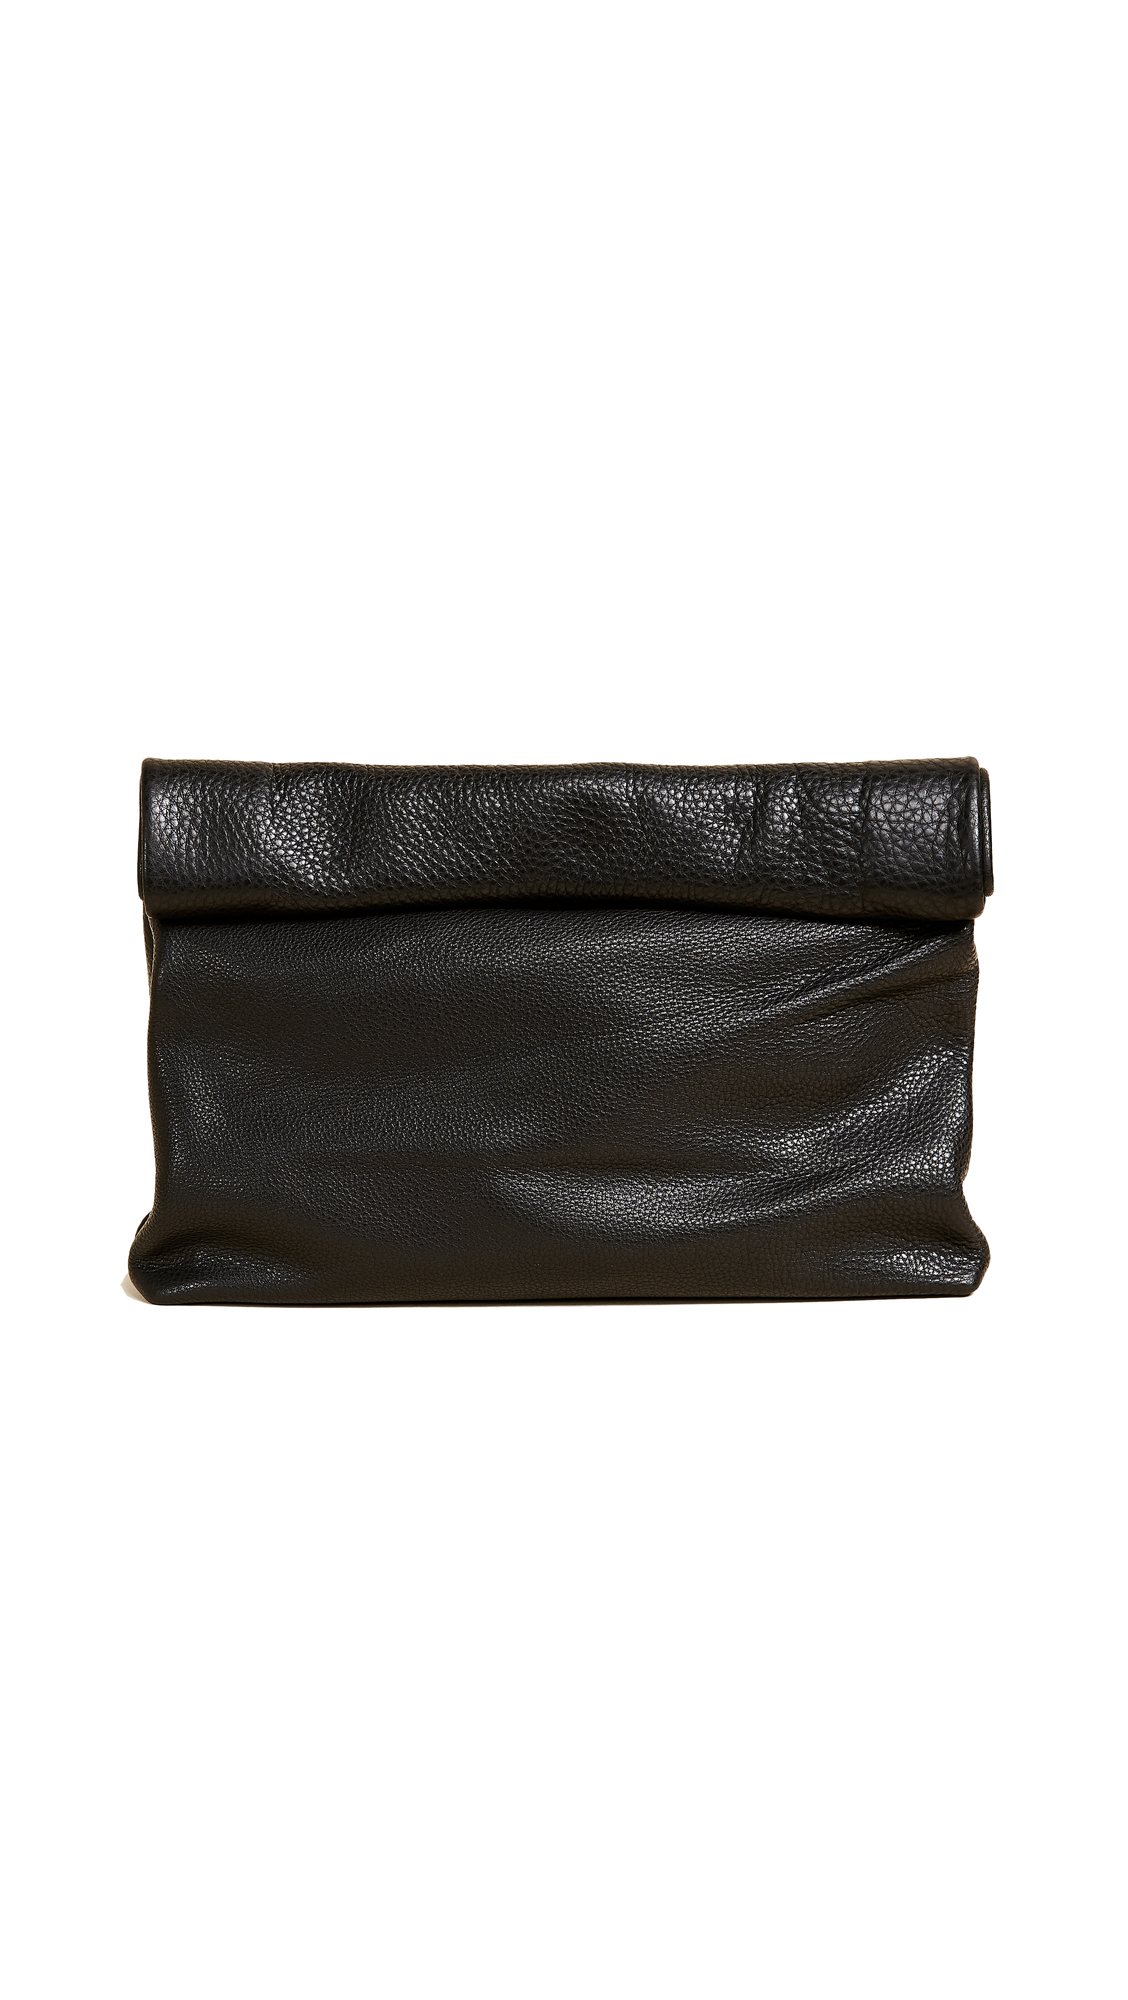 Marie Turnor Accessories The Lunch Clutch - Black